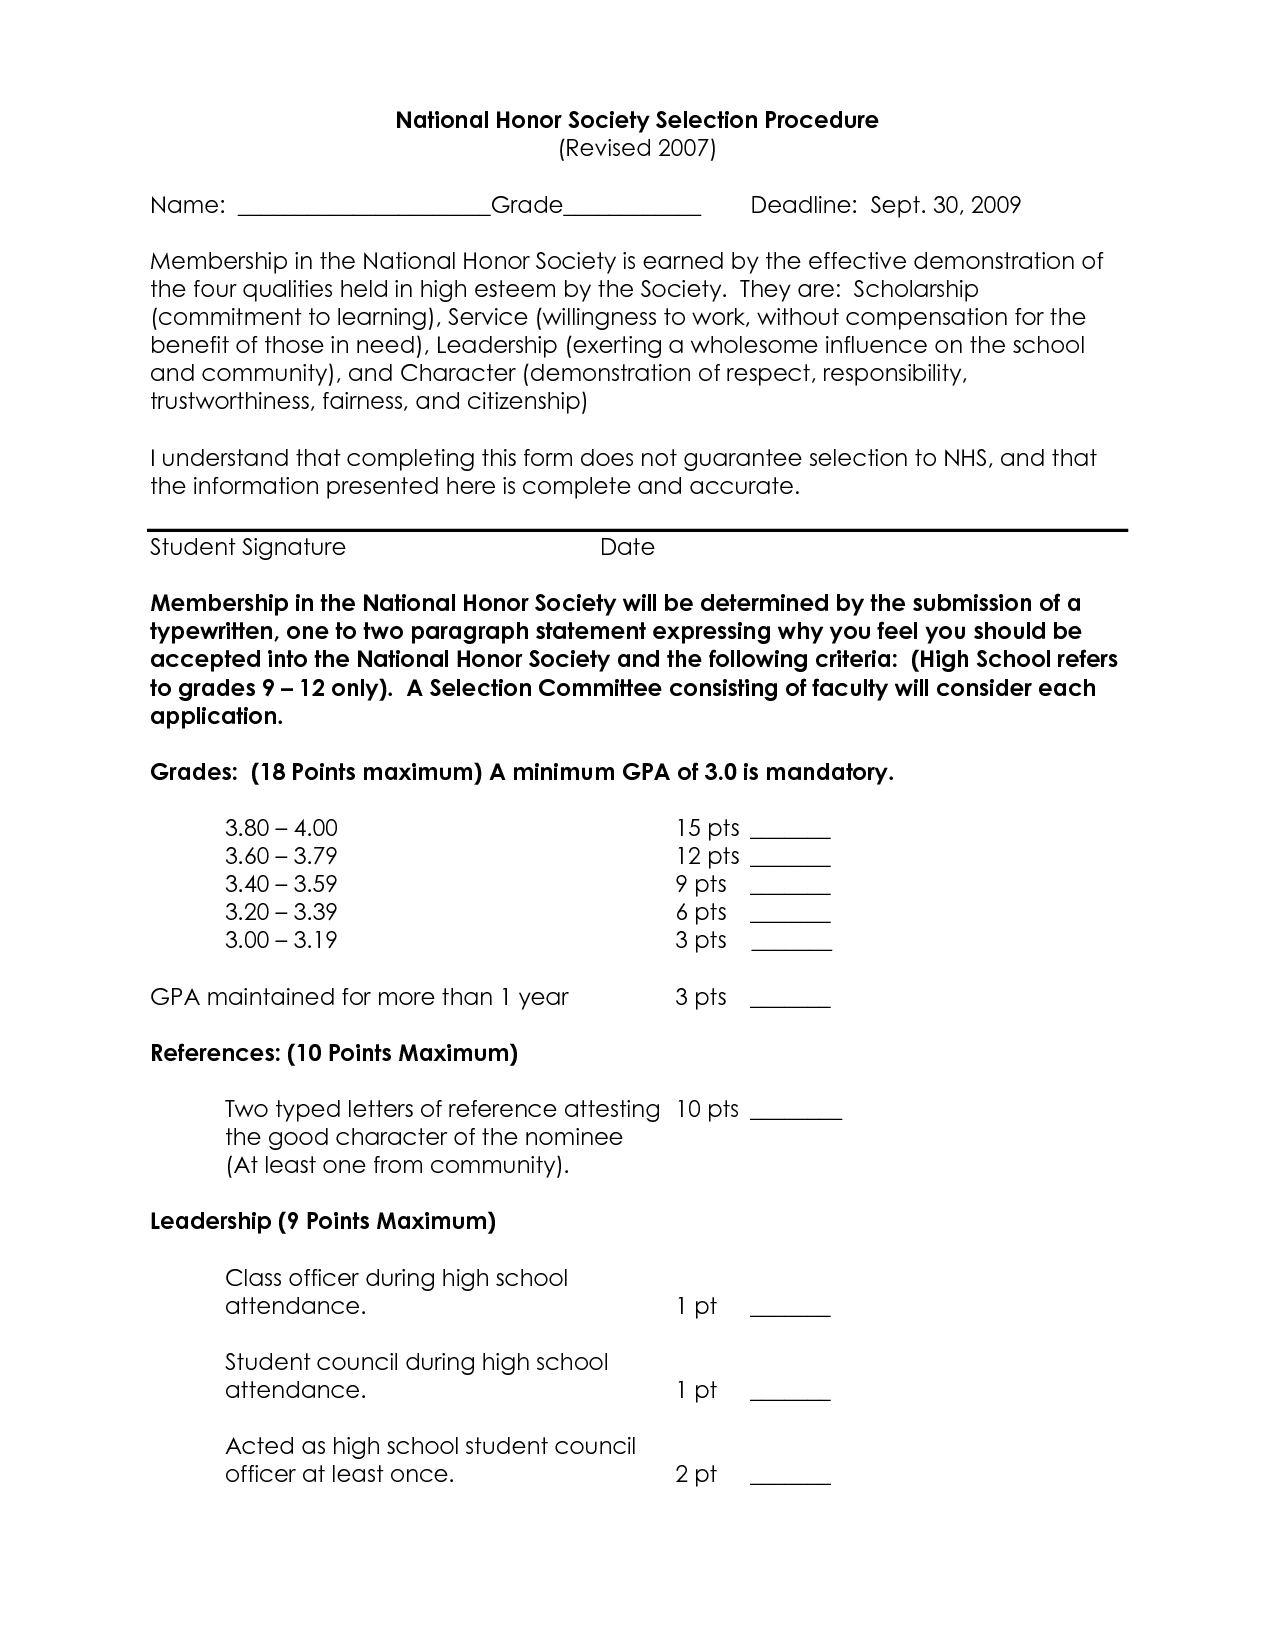 Nhs Letter Of Recommendation Template - National Honor societydation Letter Example Personal Sample